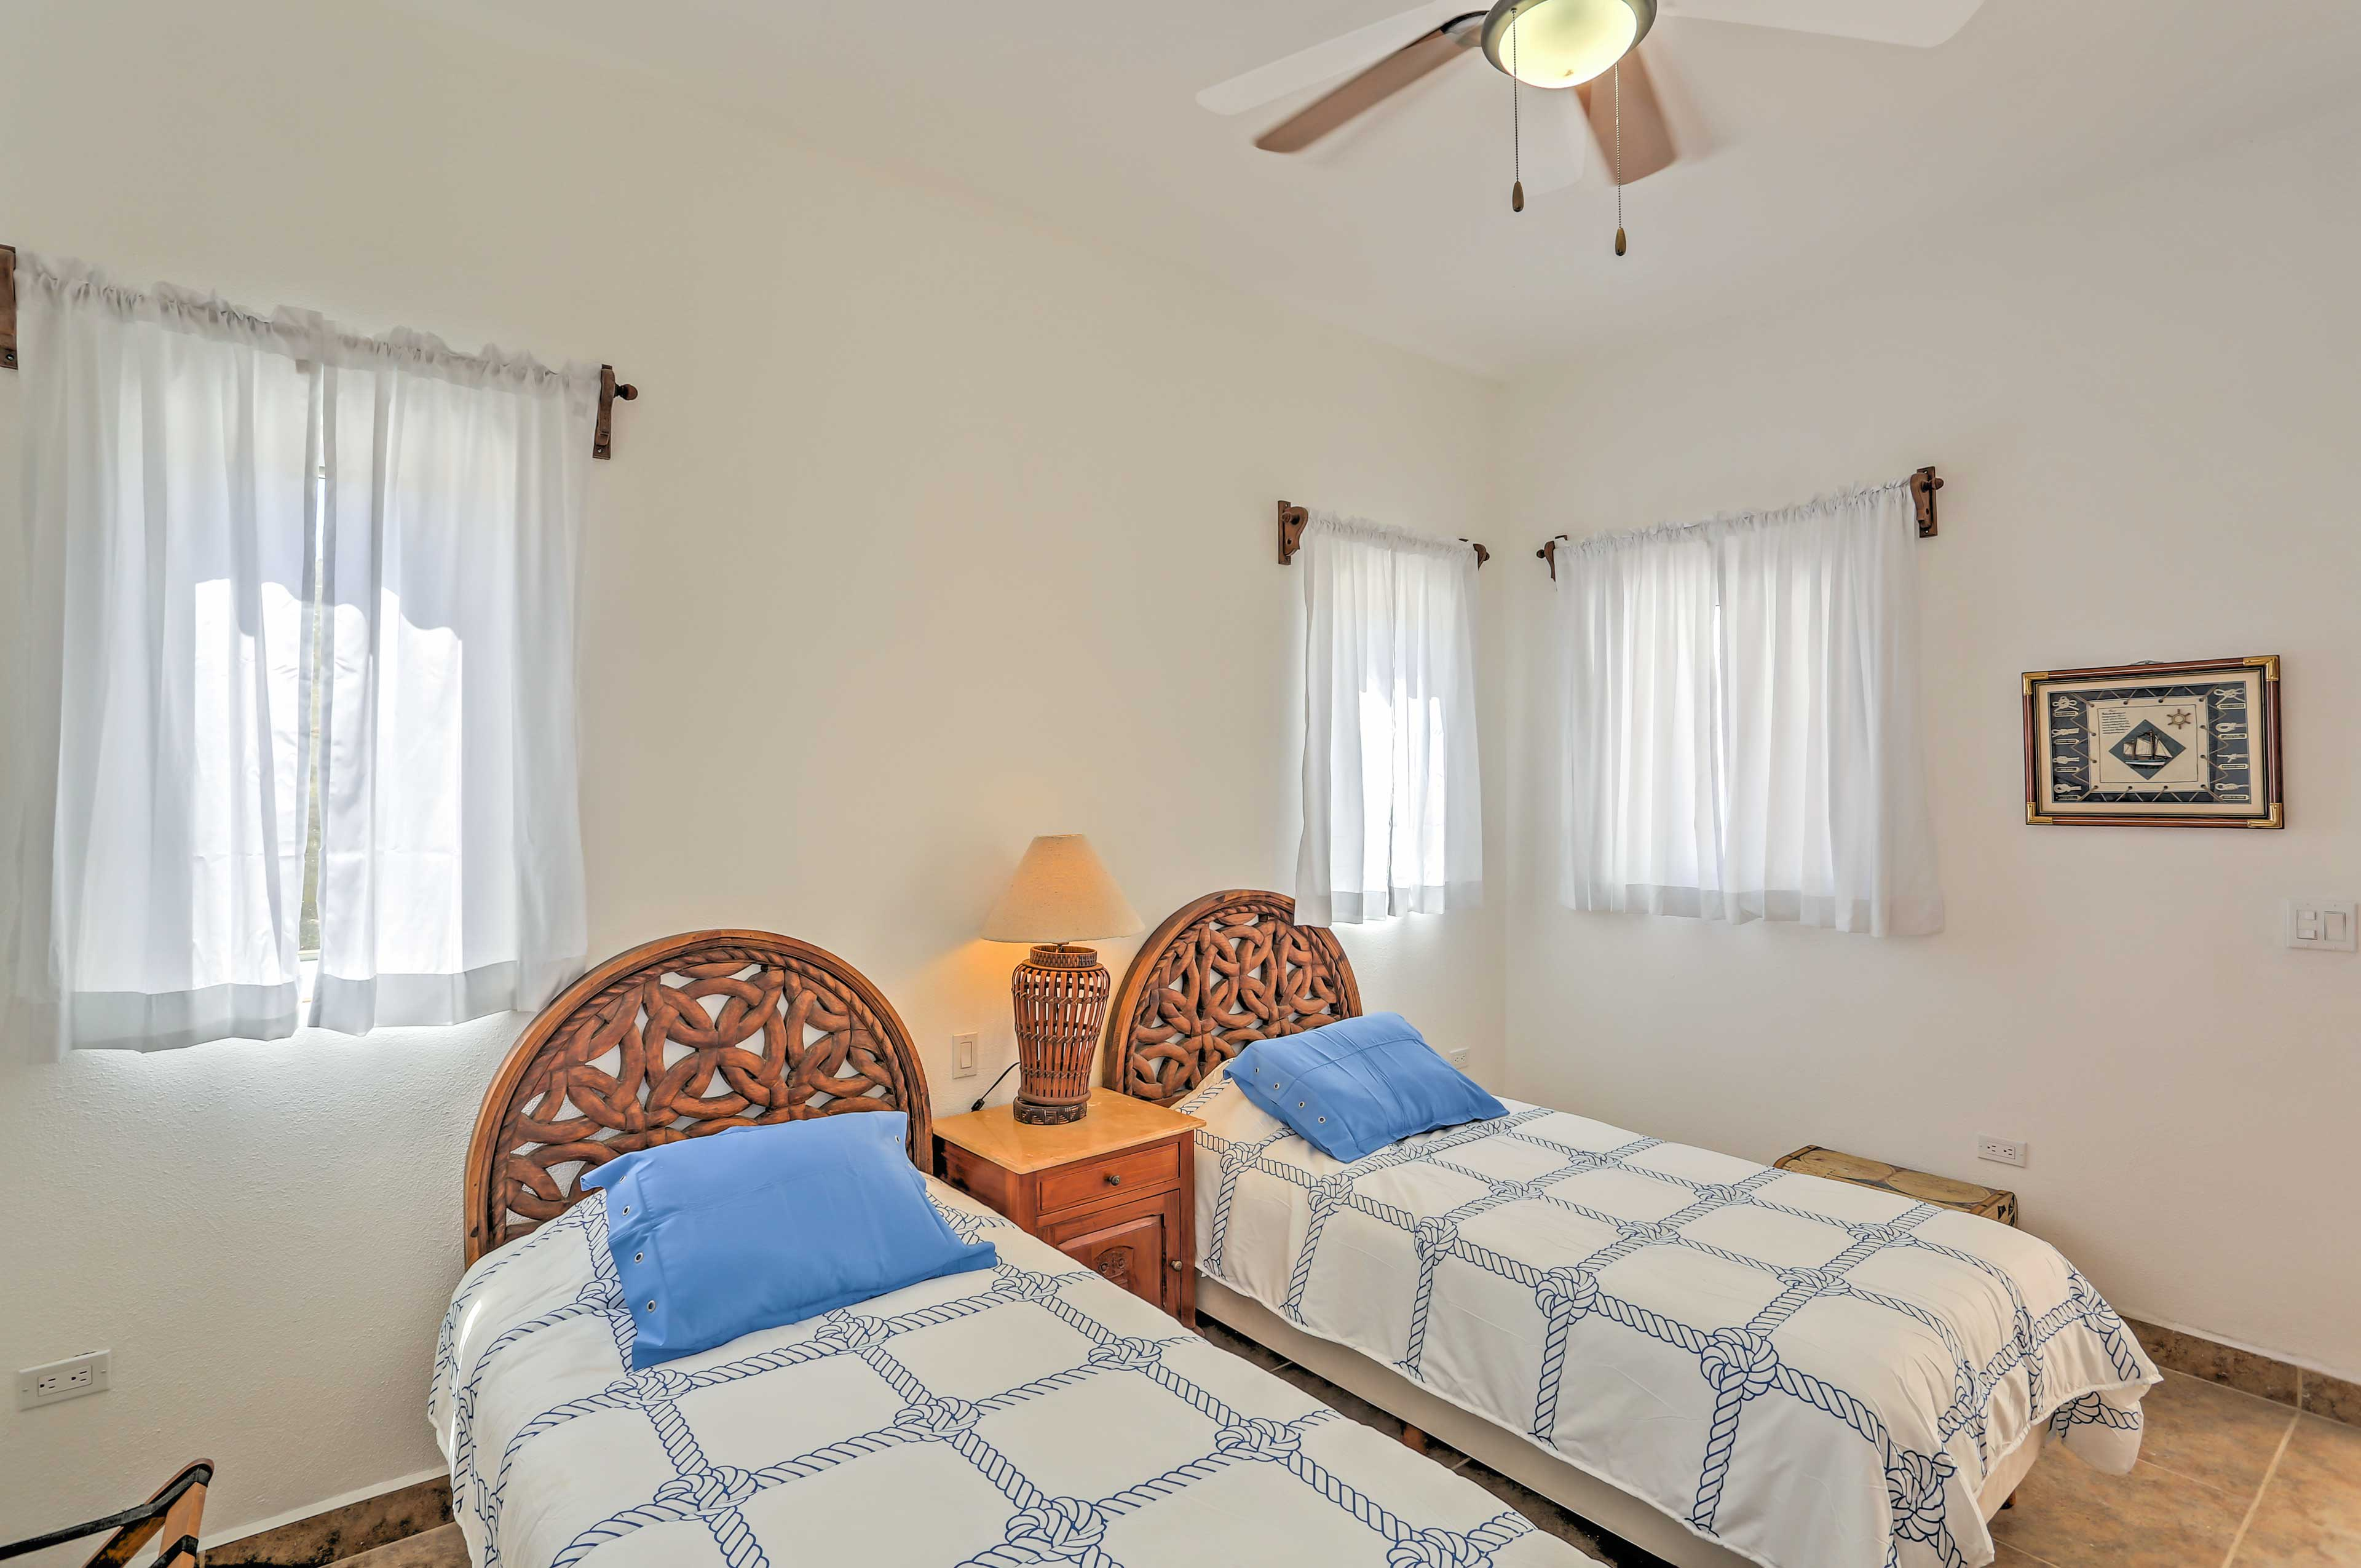 Up to 2 guests can sleep comfortably in this unit.